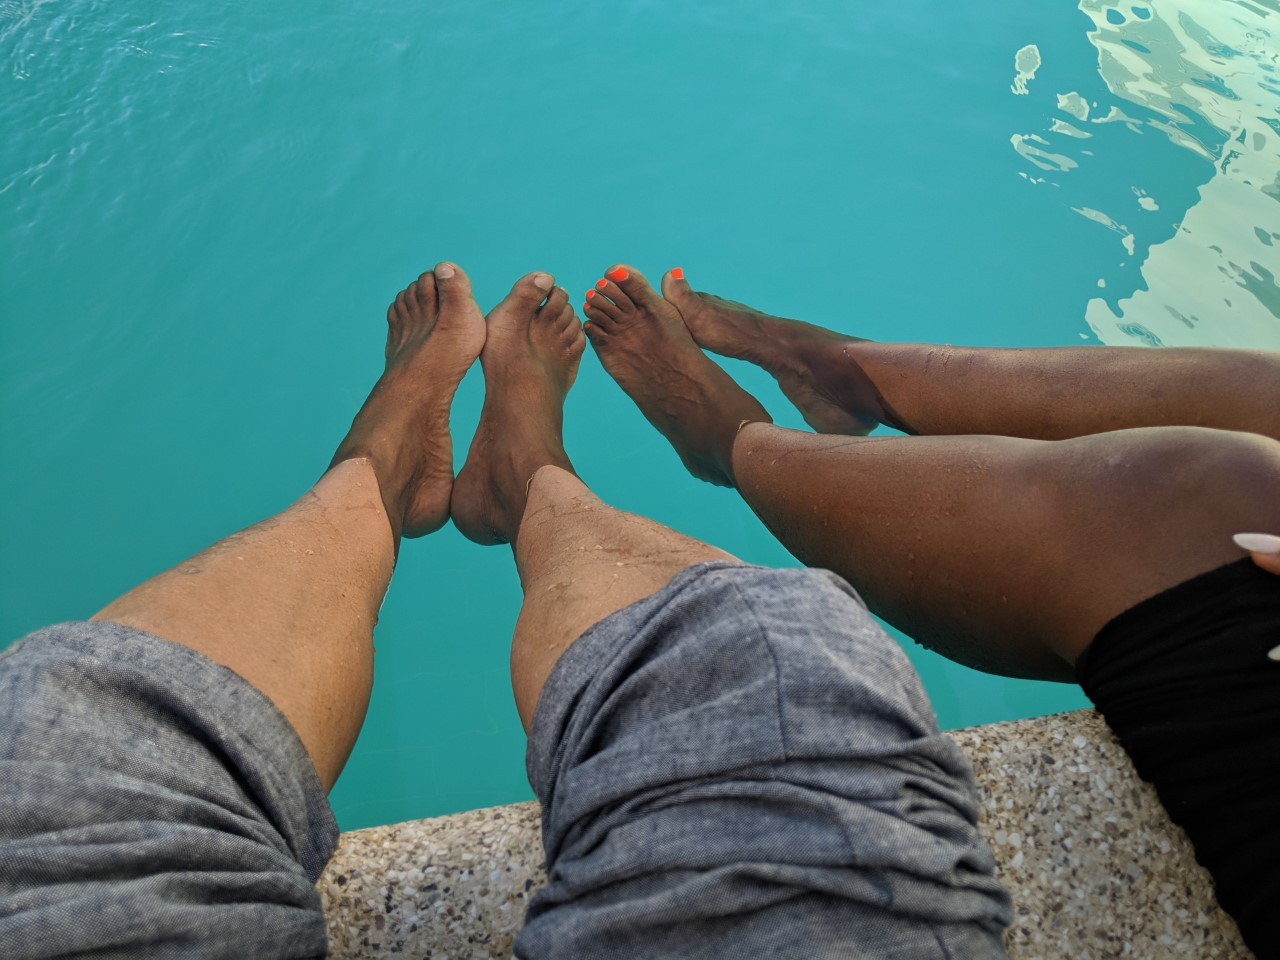 feet - FOLLOW ME ON MY TRIP TO SENEGAL